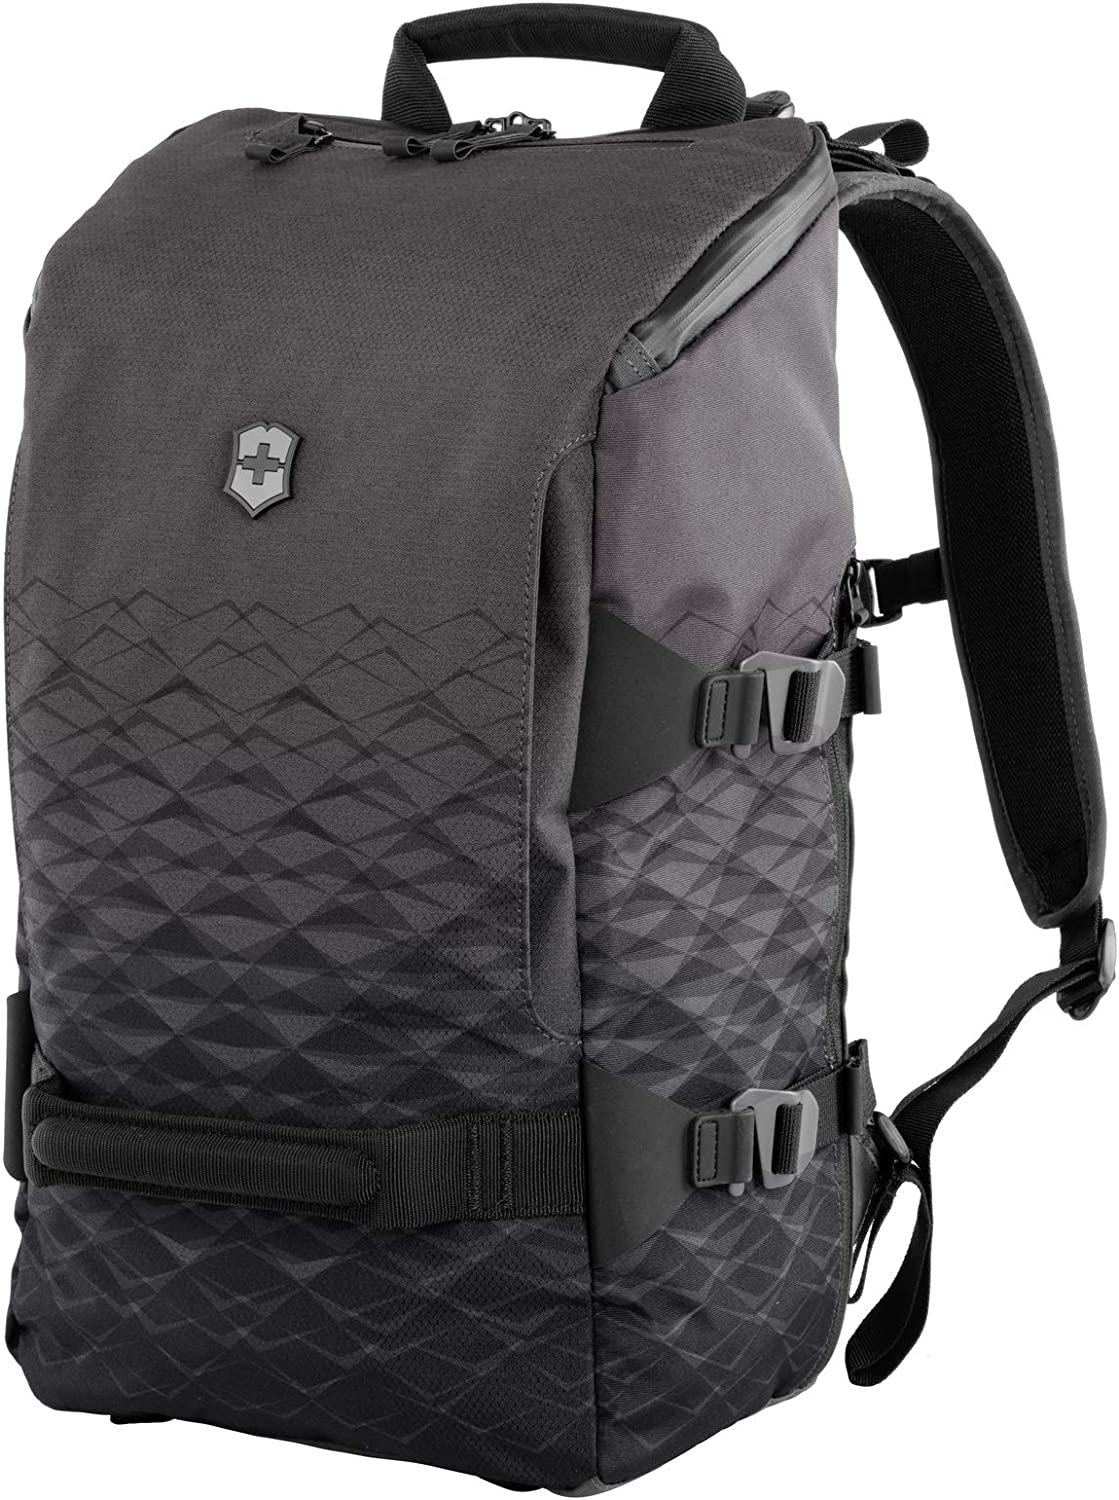 Victorinox VX Touring Everyday Backpack with Pass Thru Sleeve, Anthracite, 19.3-inch